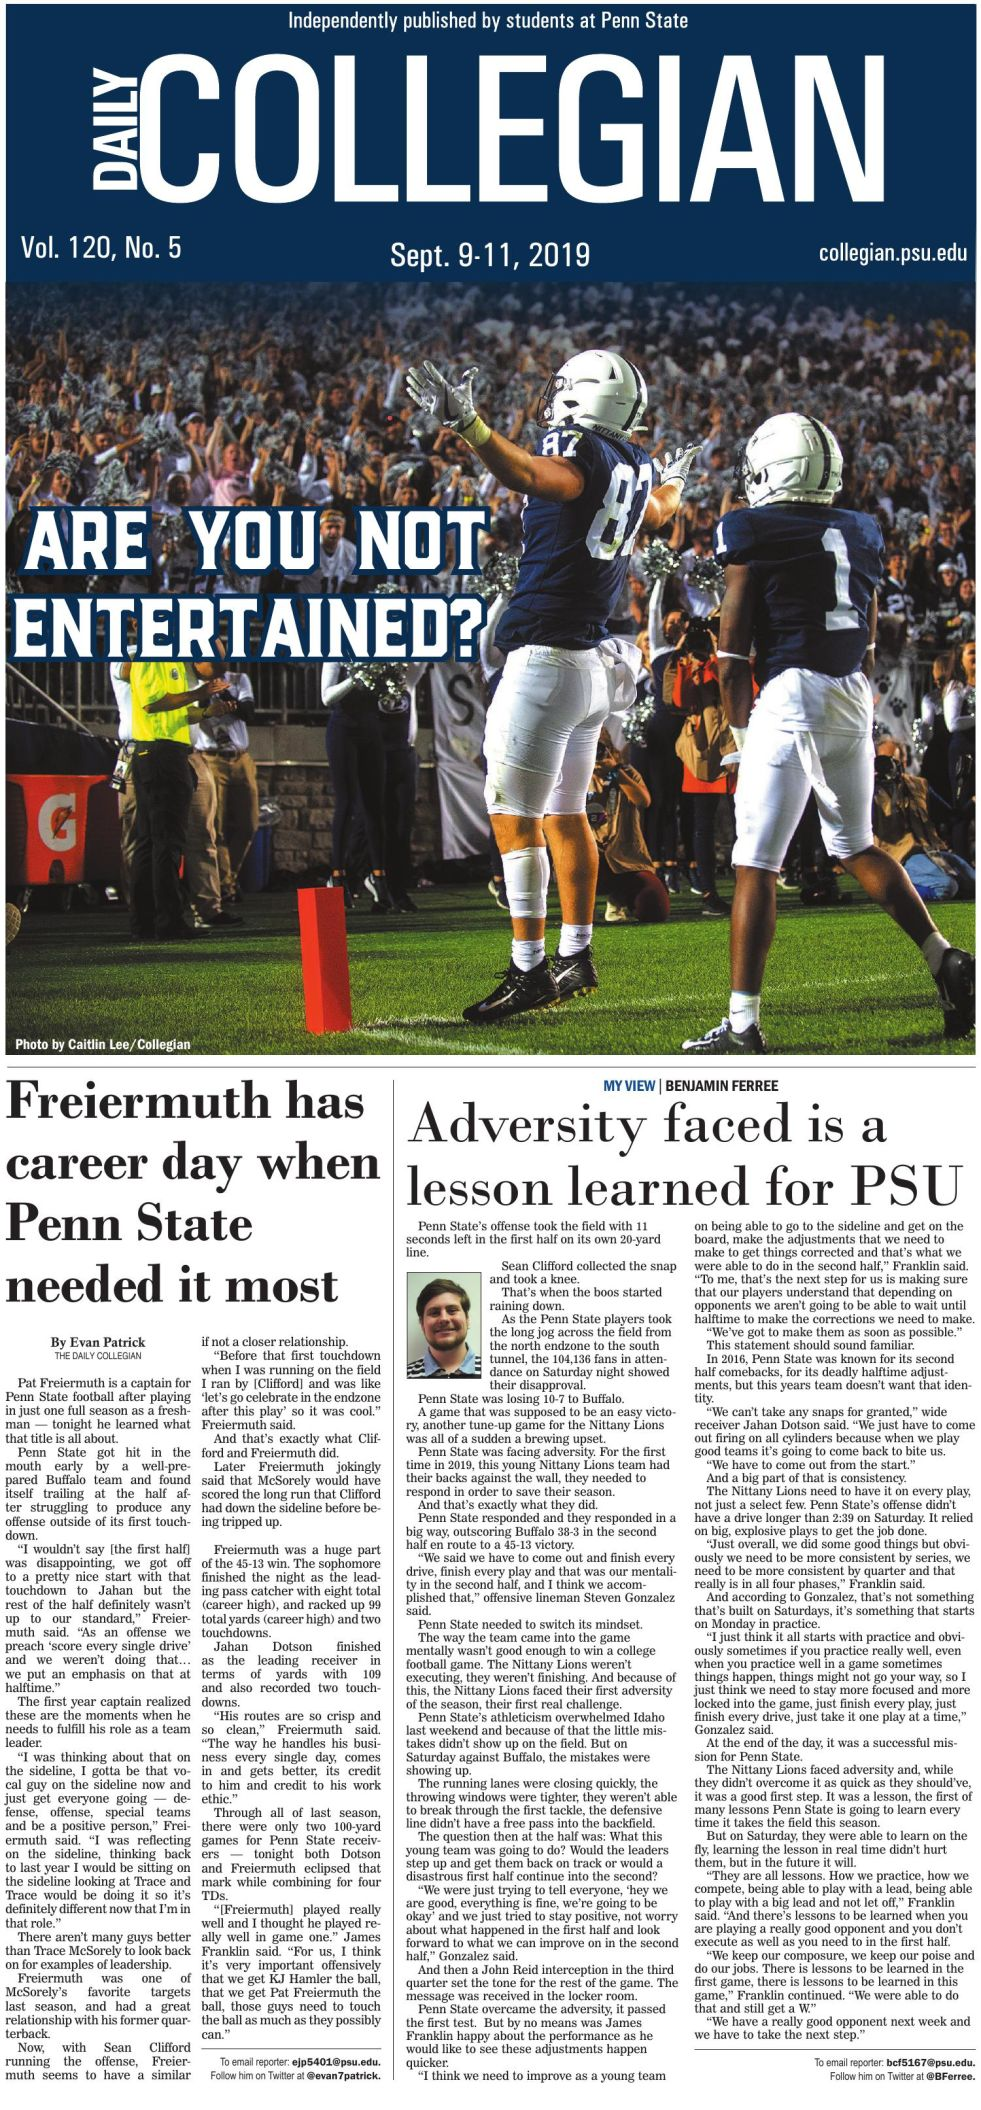 The Daily Collegian for Sept. 9, 2019